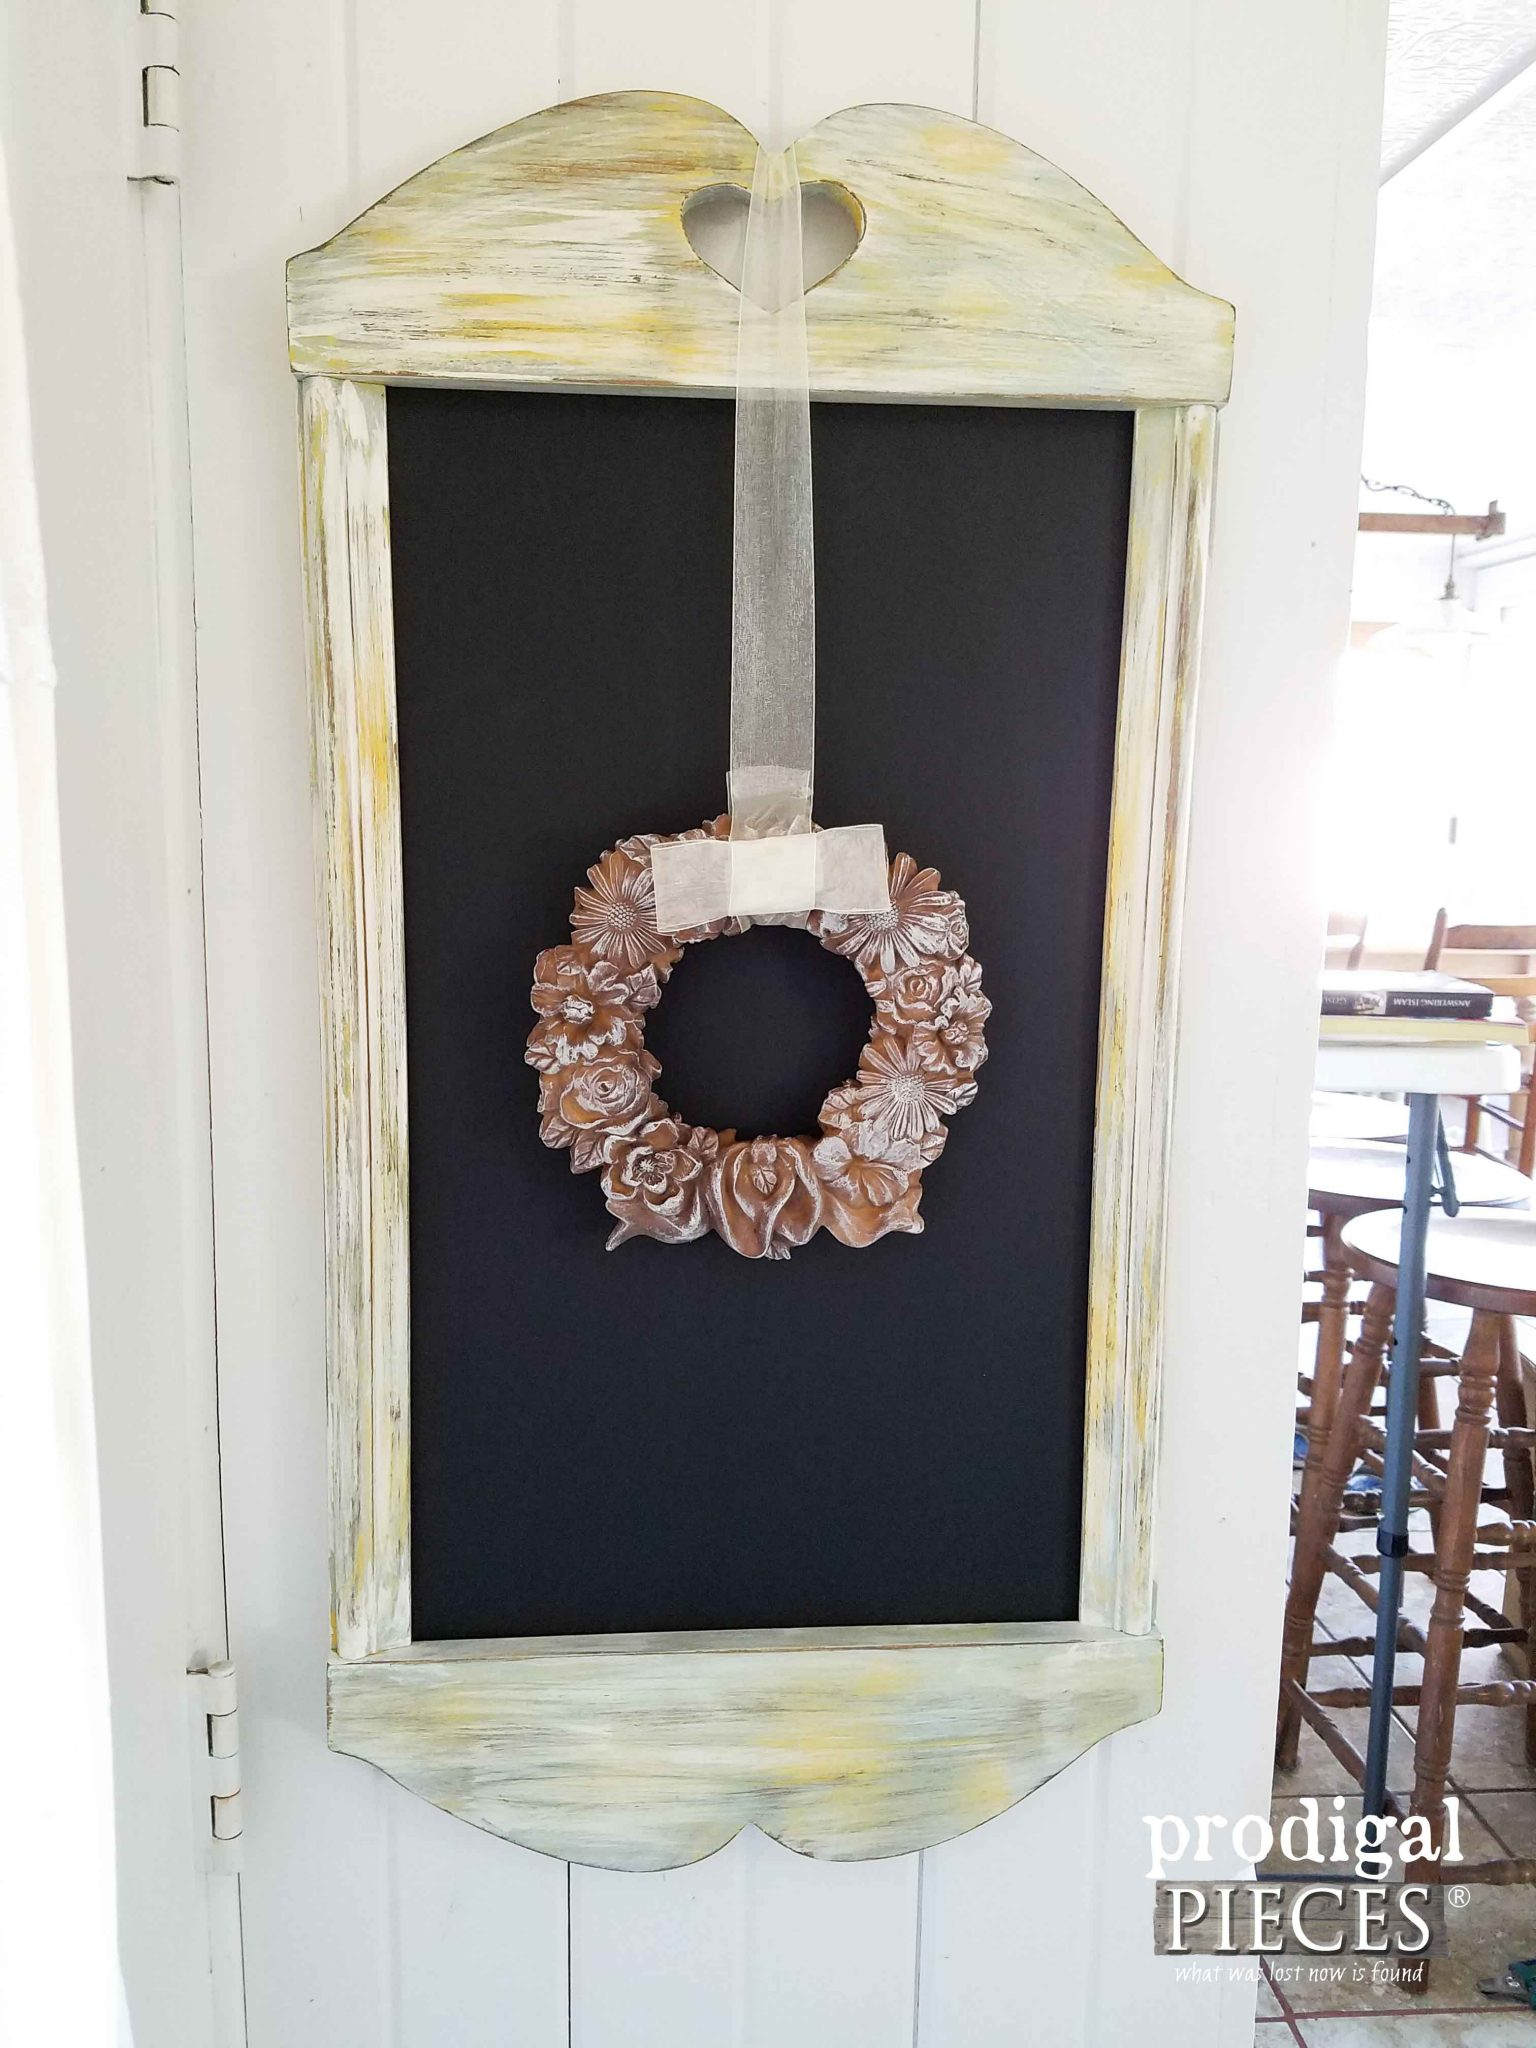 Thrifted Frame Repurposed into Rustic Chalkboard by Prodigal Pieces | prodigalpieces.com